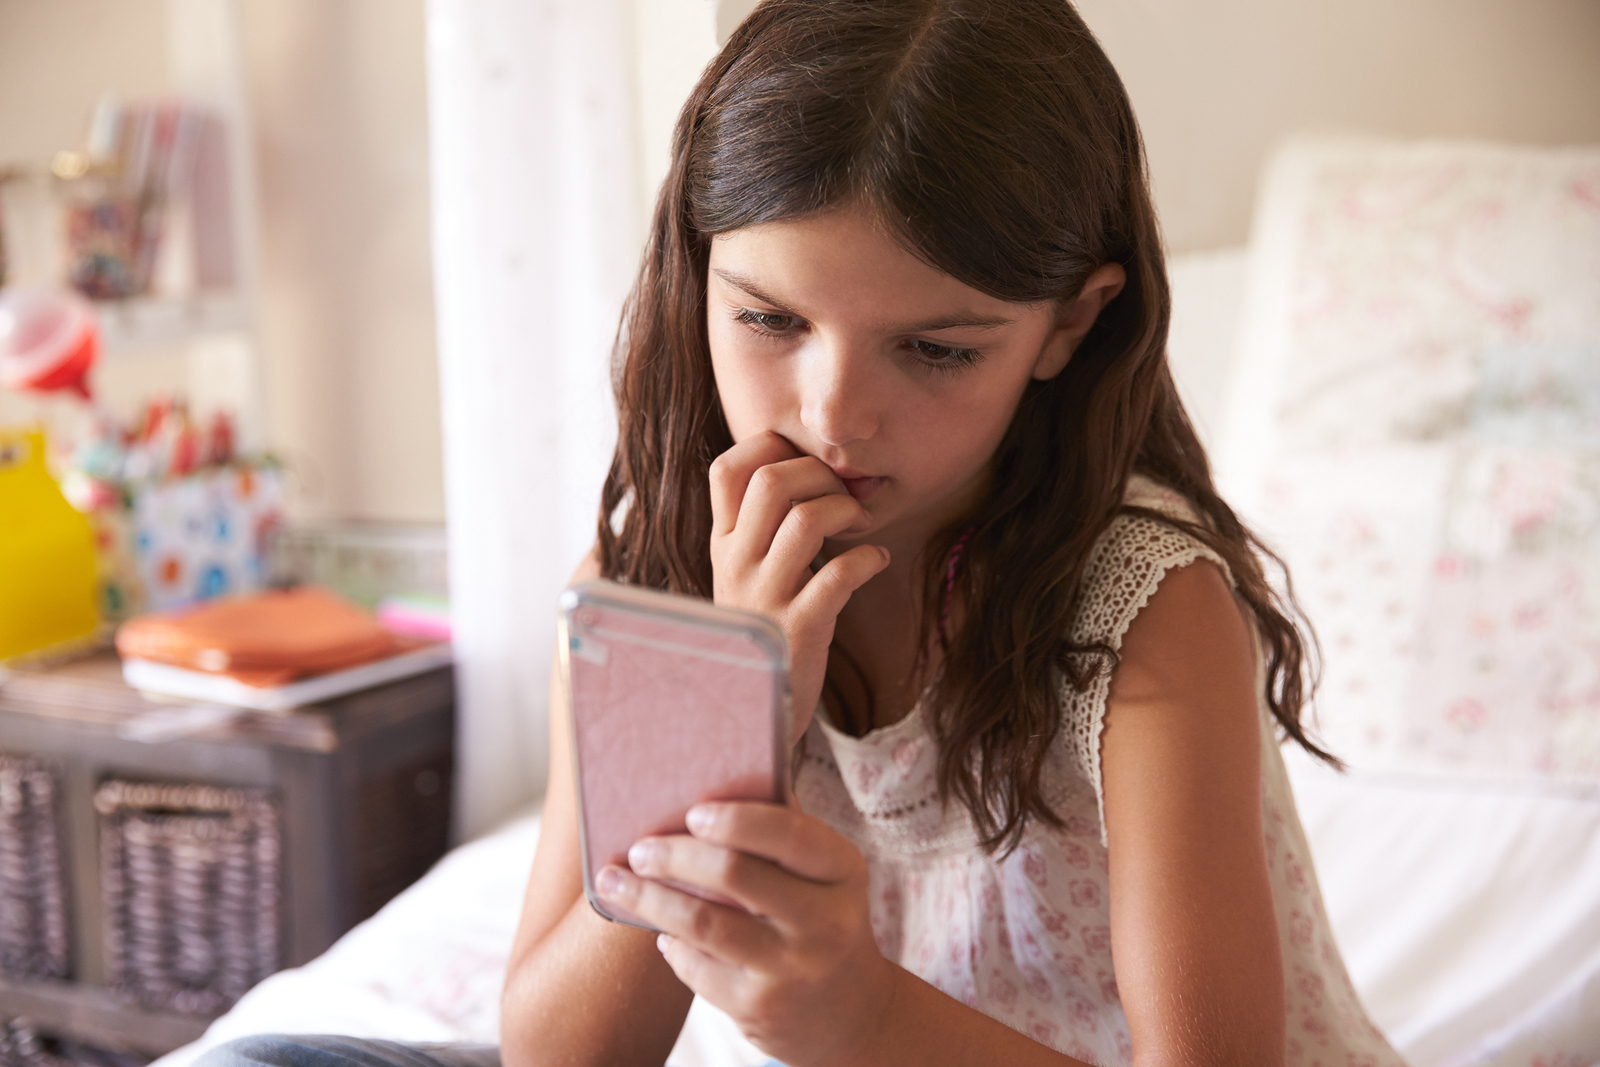 With the internet ingrained in all of our lives as a permanent fixture, as parents we must be dutiful and responsible for not only the amount of time spent on internet-enabled devices, but for the content our children are consuming on them.  ©BigStockPhoto